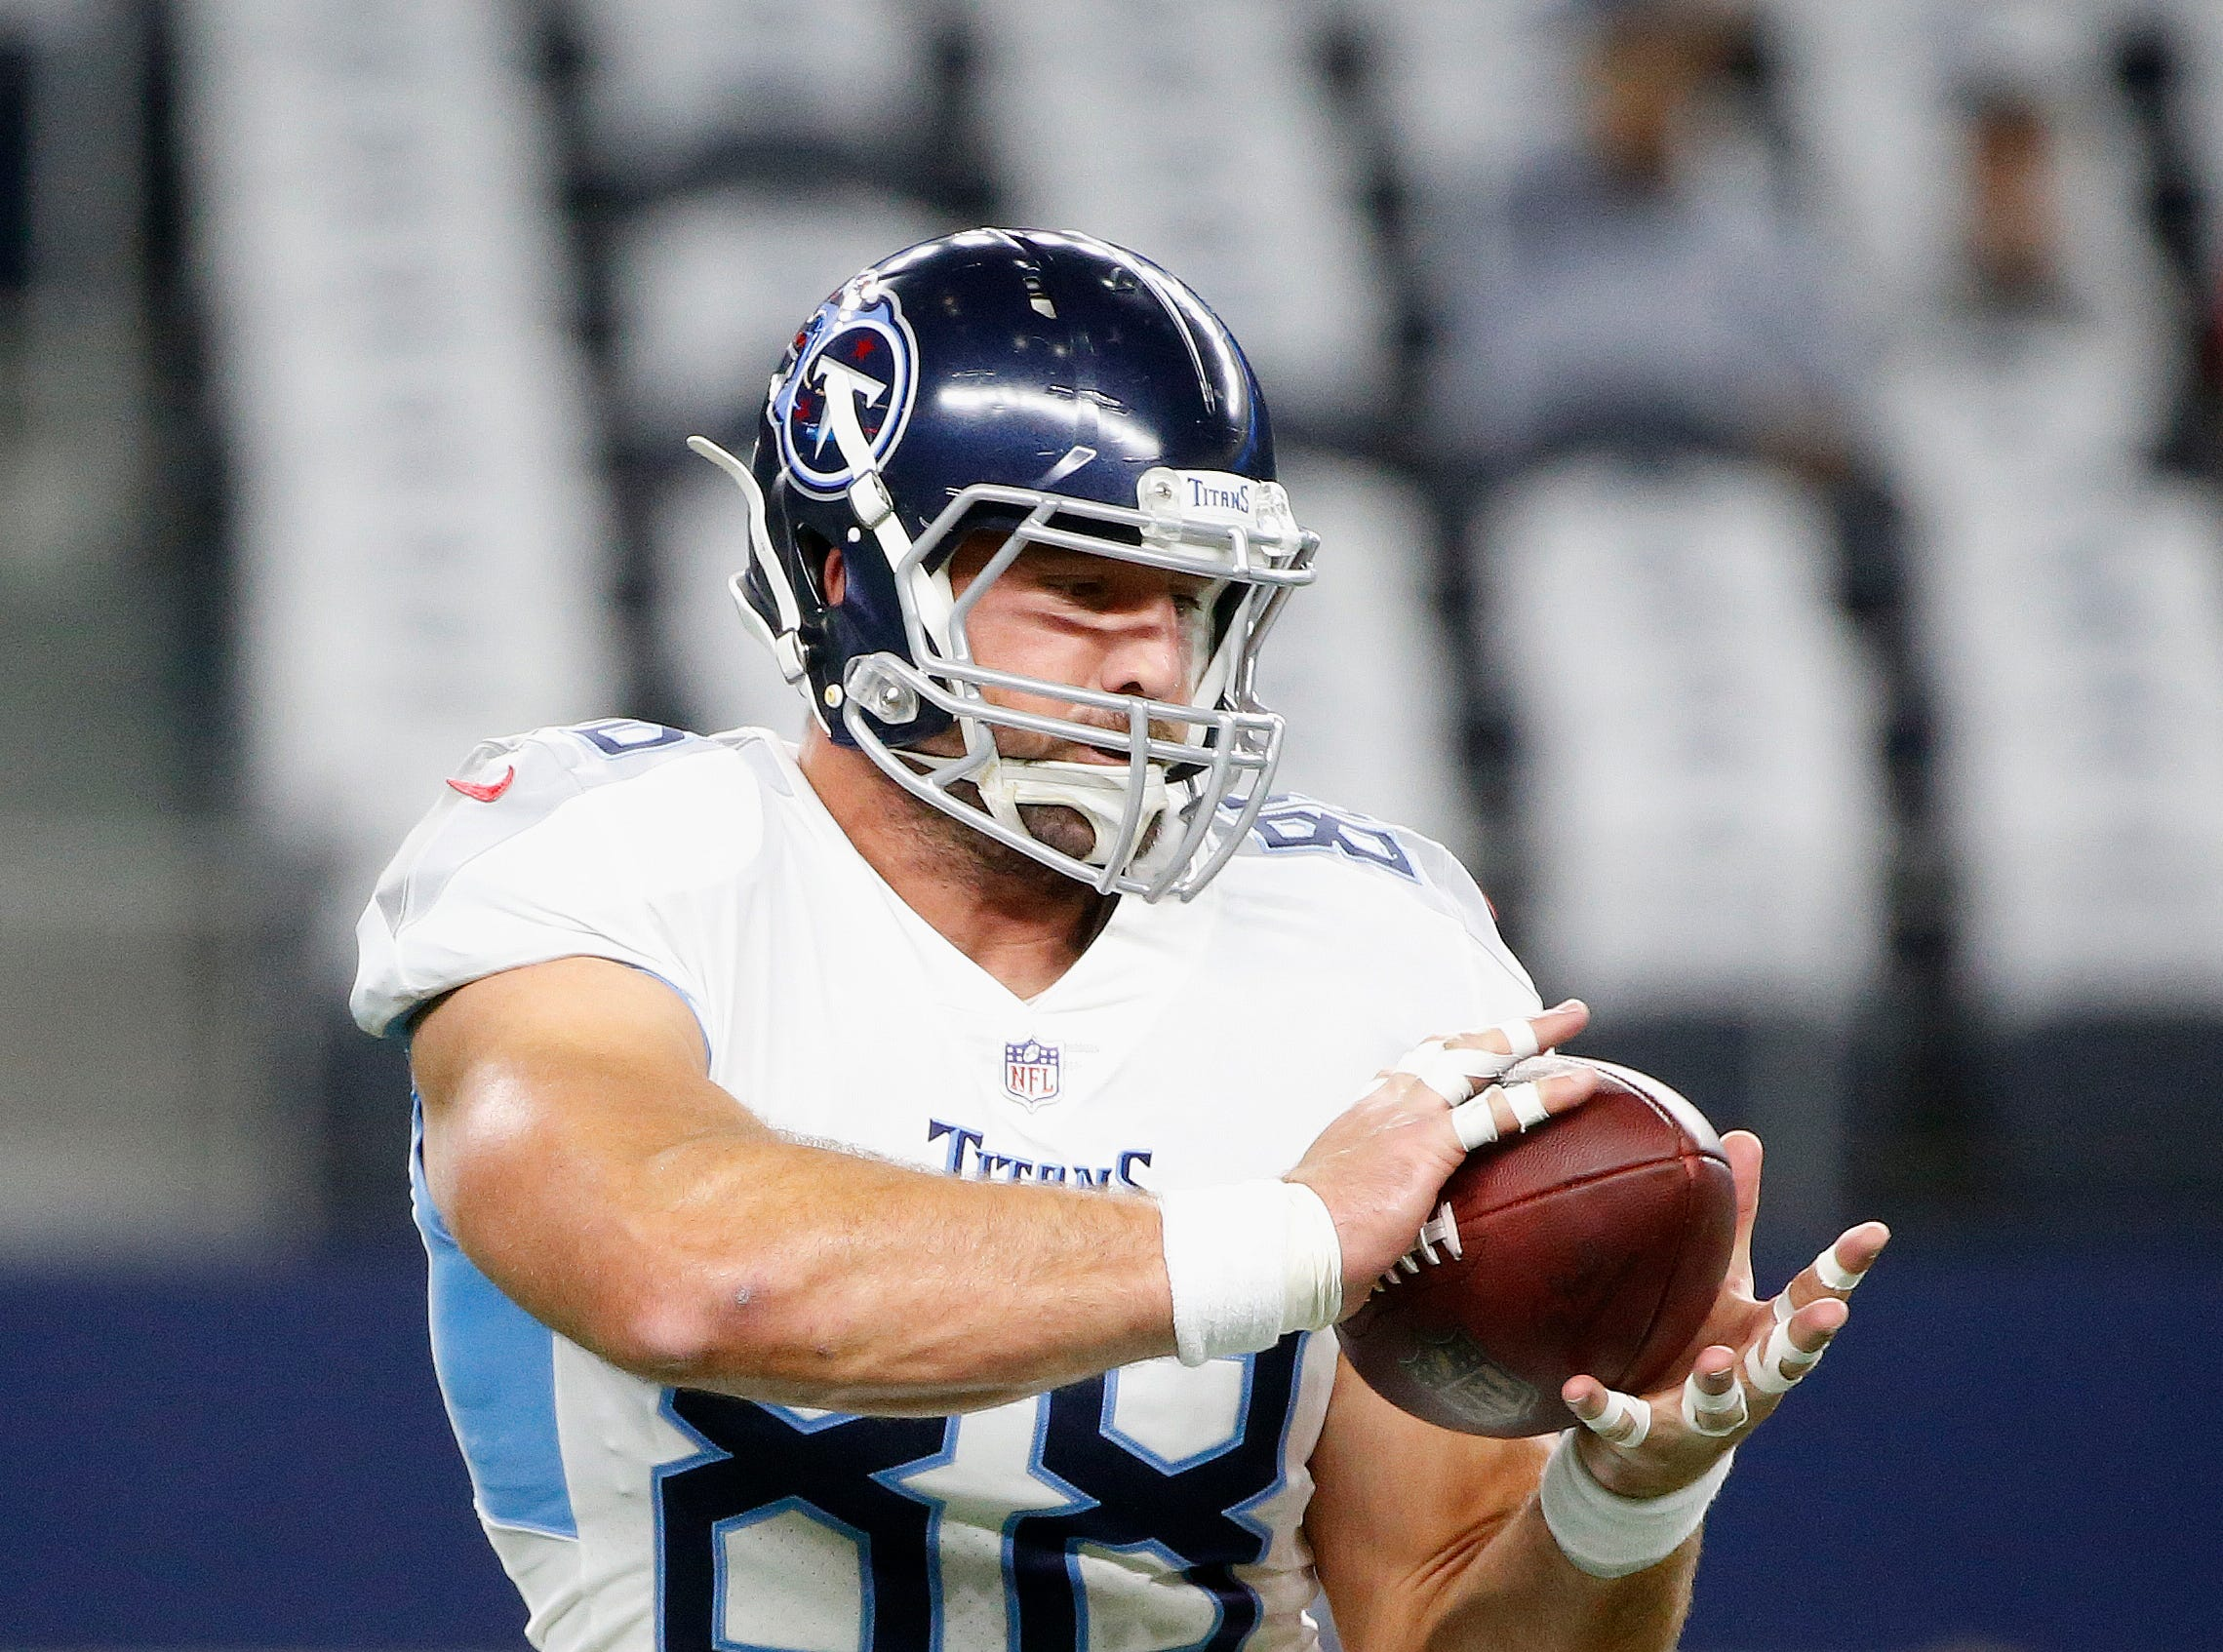 Tennessee Titans tight end Luke Stocker (88) warms up before the first half of an NFL football game between the Dallas Cowboys and the Tennessee Titans, Monday, Nov. 5, 2018, in Arlington, Texas.